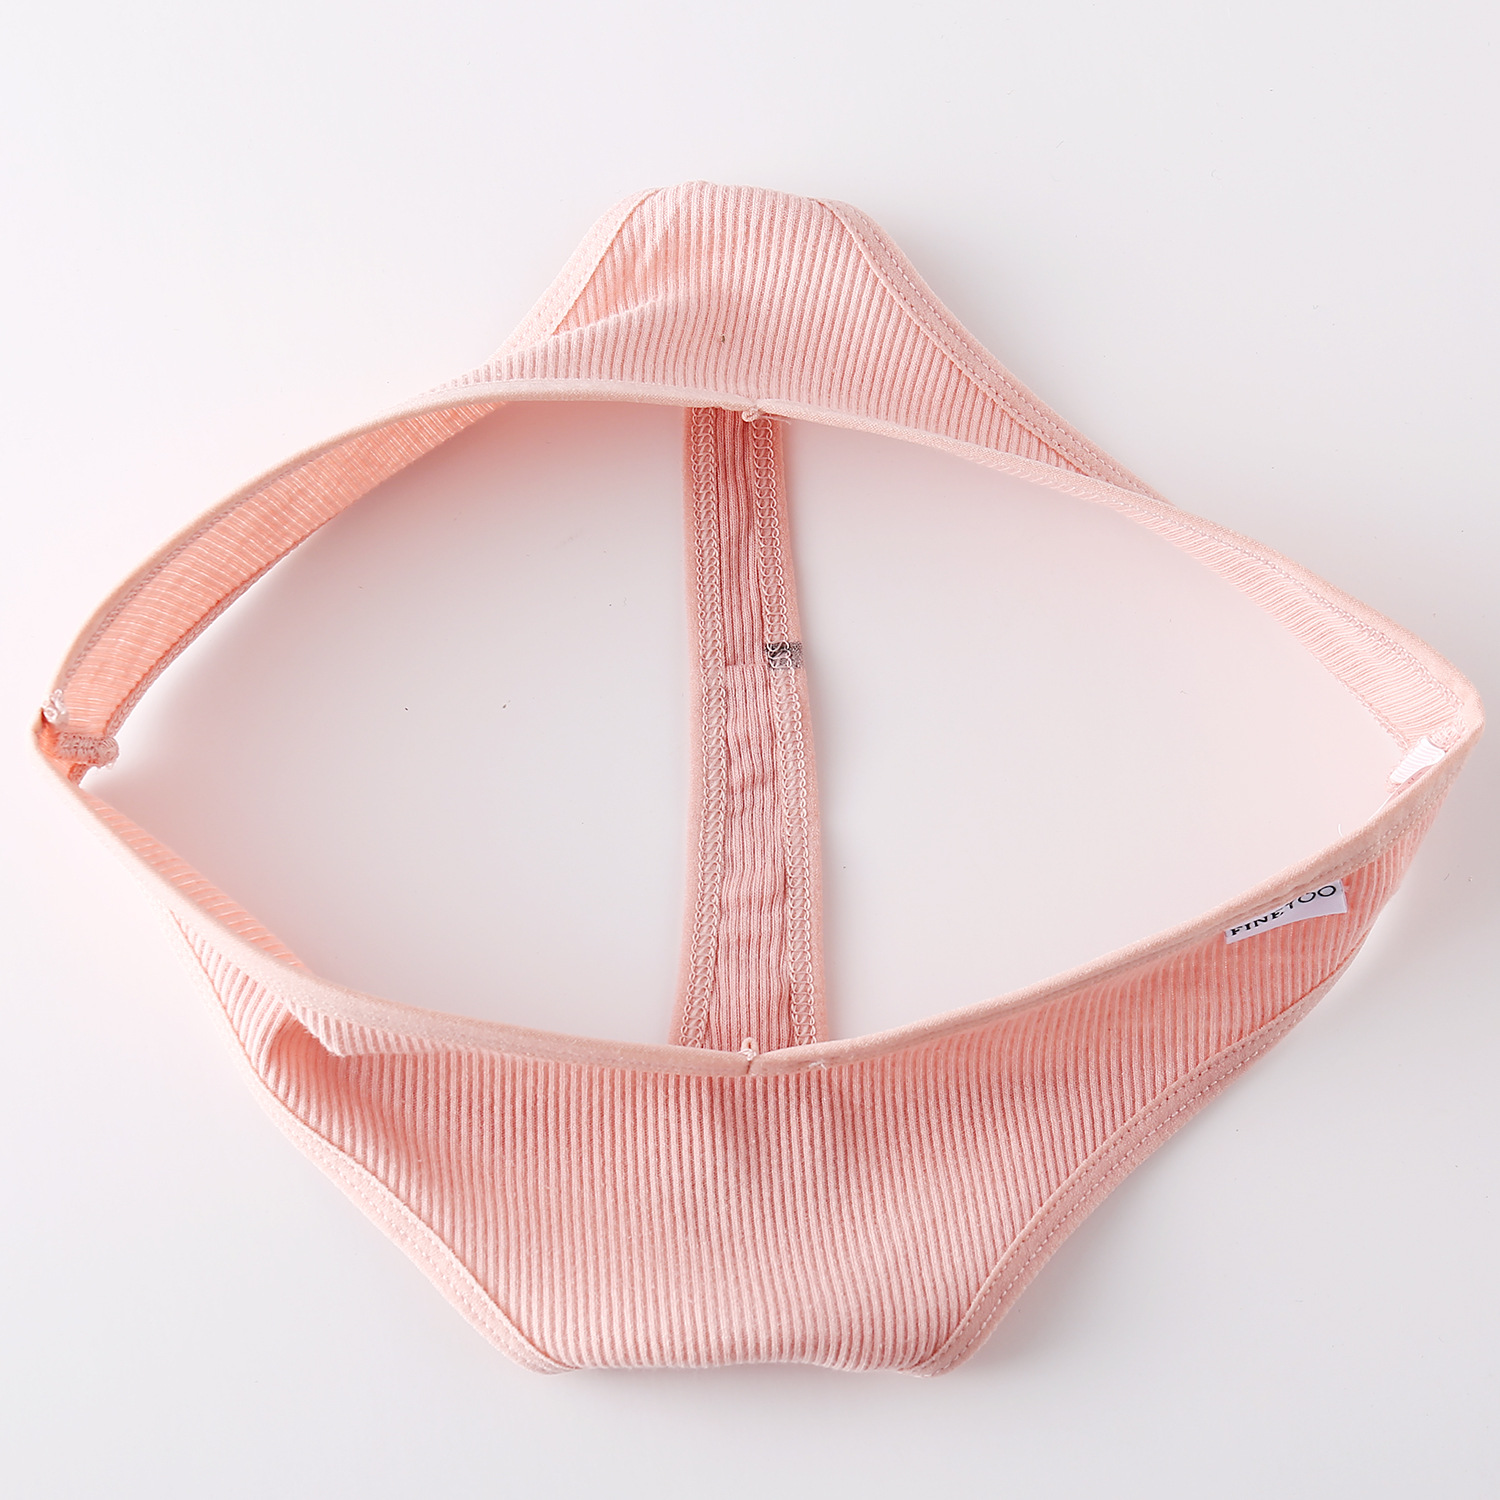 H5f945ac2236f49fea0a91a1f42abb8c0m Fashion G-String Panties Cotton Women Underwear Sexy Panties Low-Rise Female Underpants Thong Solid Color Pantys M-XL Underwear